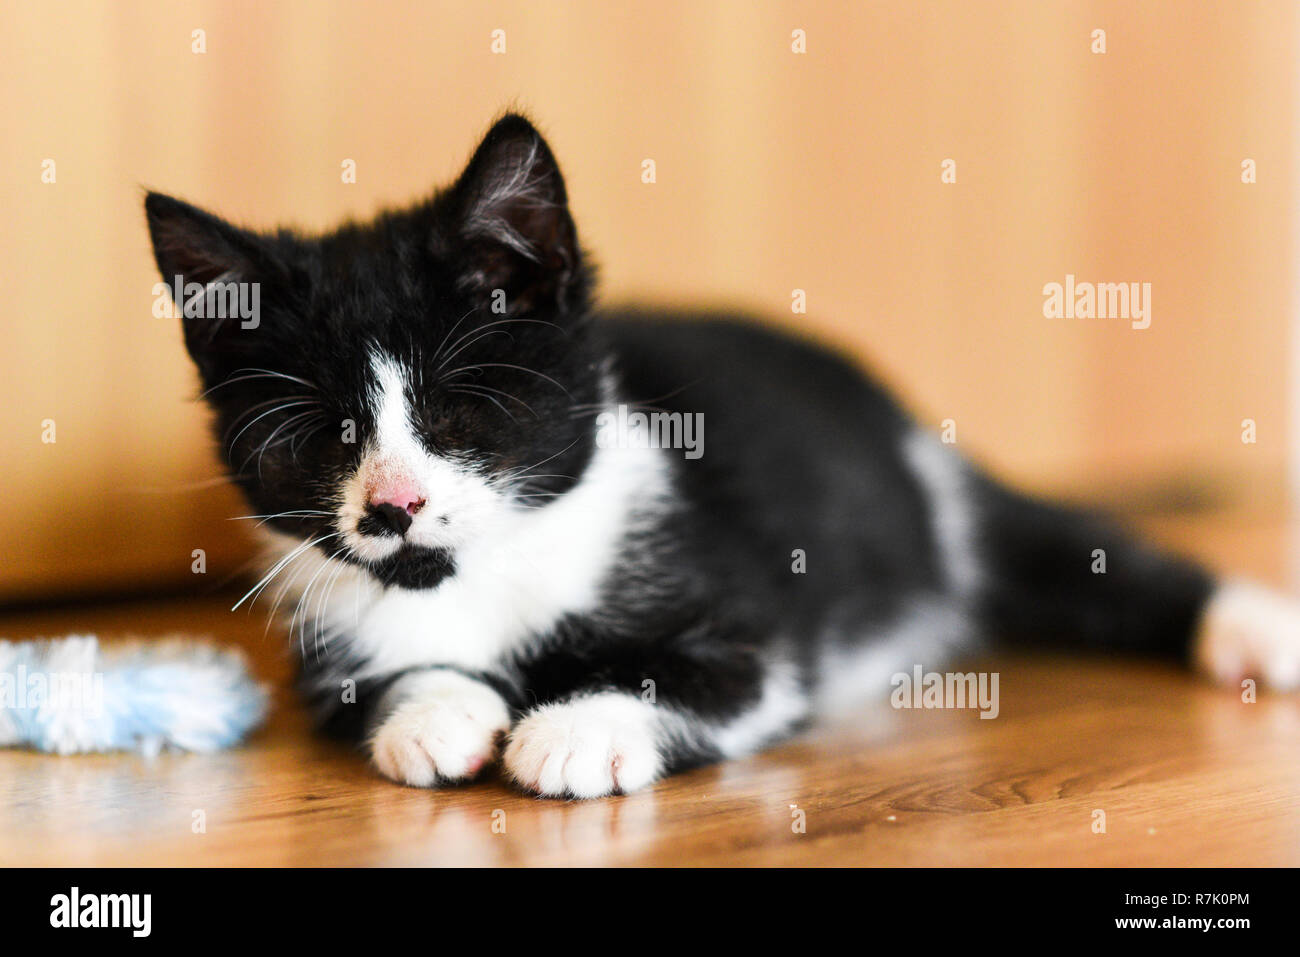 A young and blind cat with removed eyeballs. - Stock Image